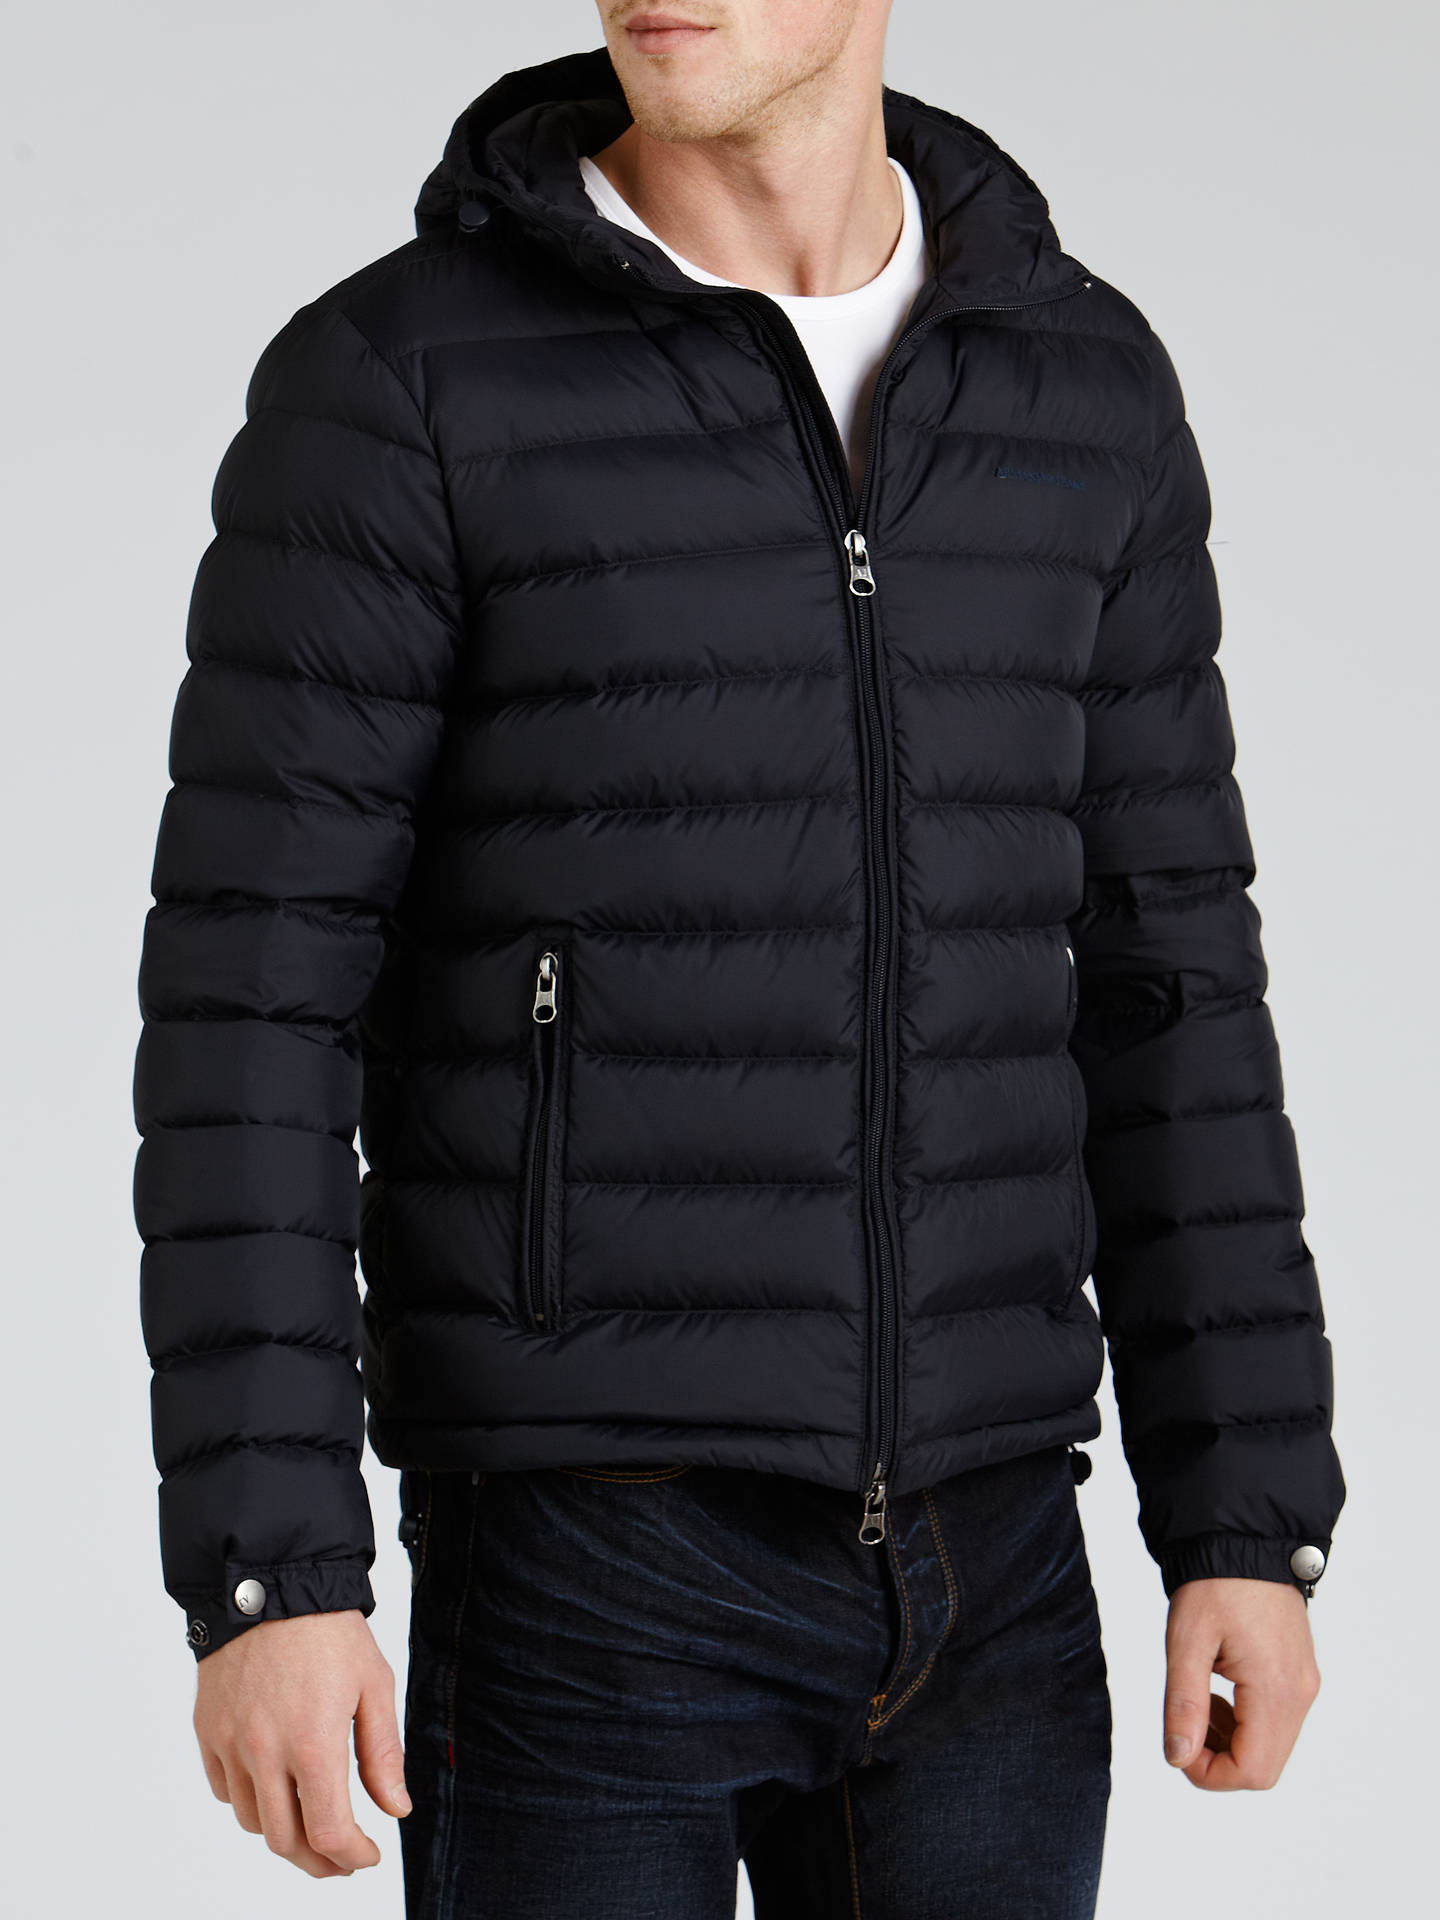 beda972f707c ... BuyArmani Jeans Down Filled Puffer Jacket, Navy, 40 Online at  johnlewis.com ...